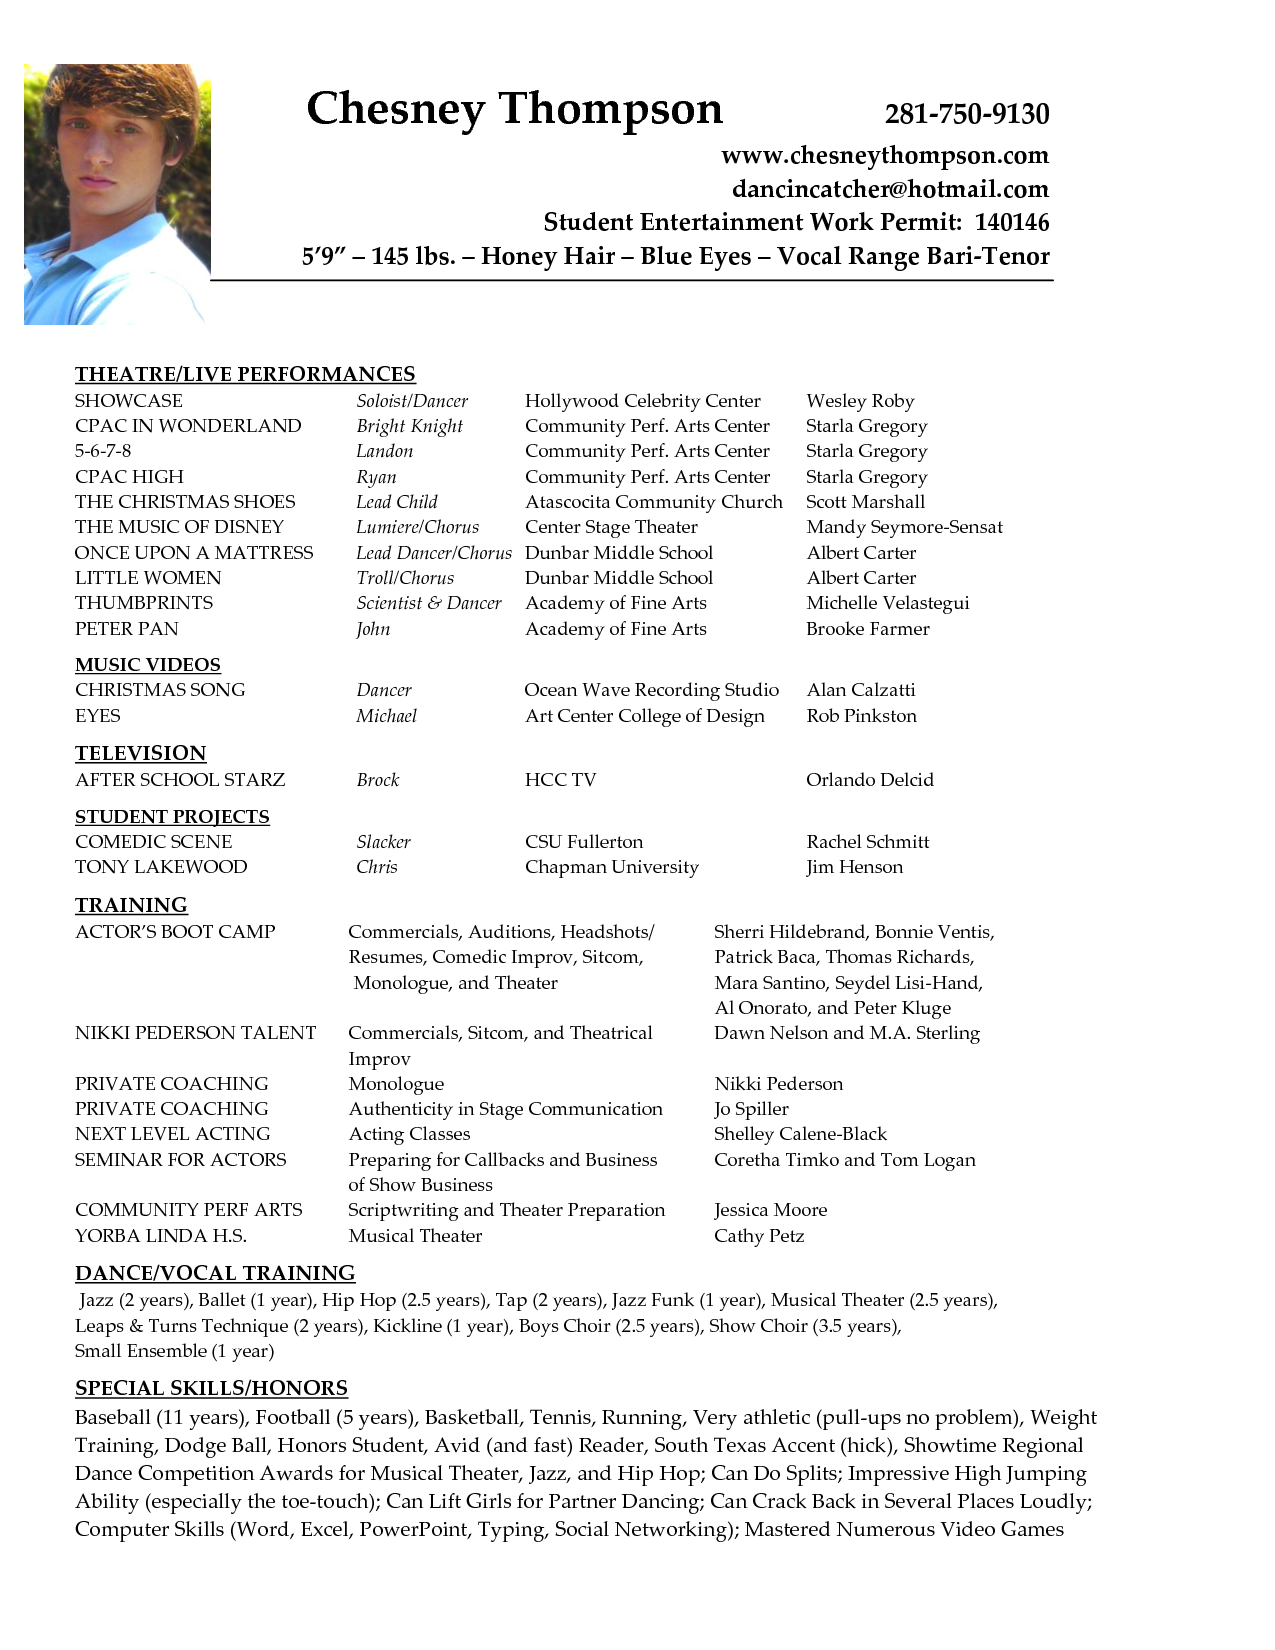 Academic Resume Template Theatre Resume Template Builder Dfdqkmt Barb Jones Photography